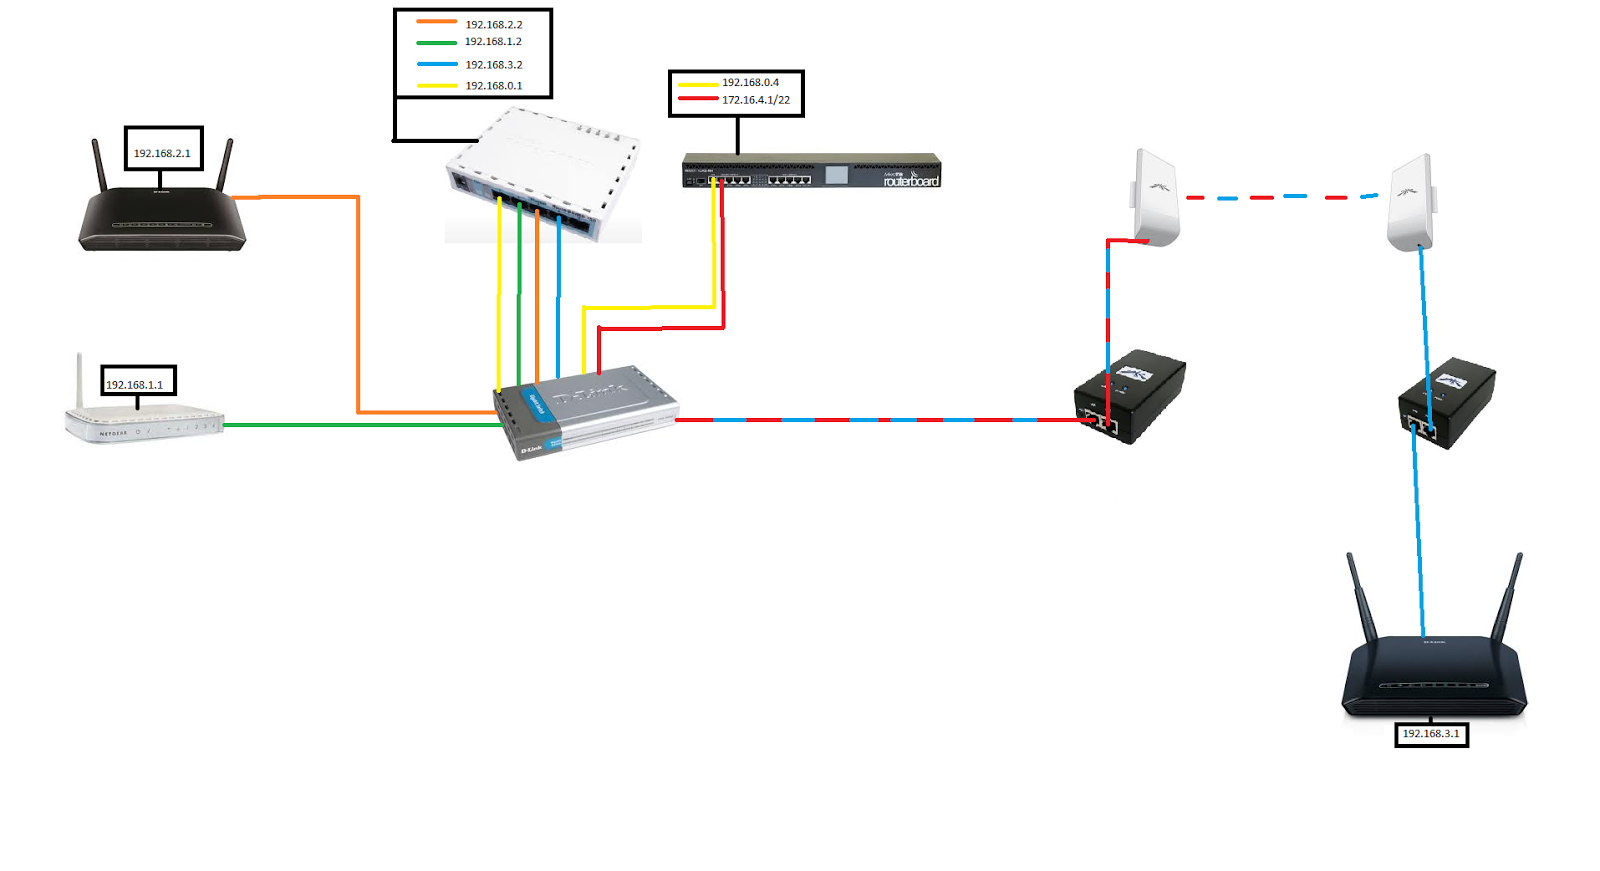 small resolution of by adding all your office devices to a switch you can connect adsl connections from a remote site and distribute it to your clients this help your